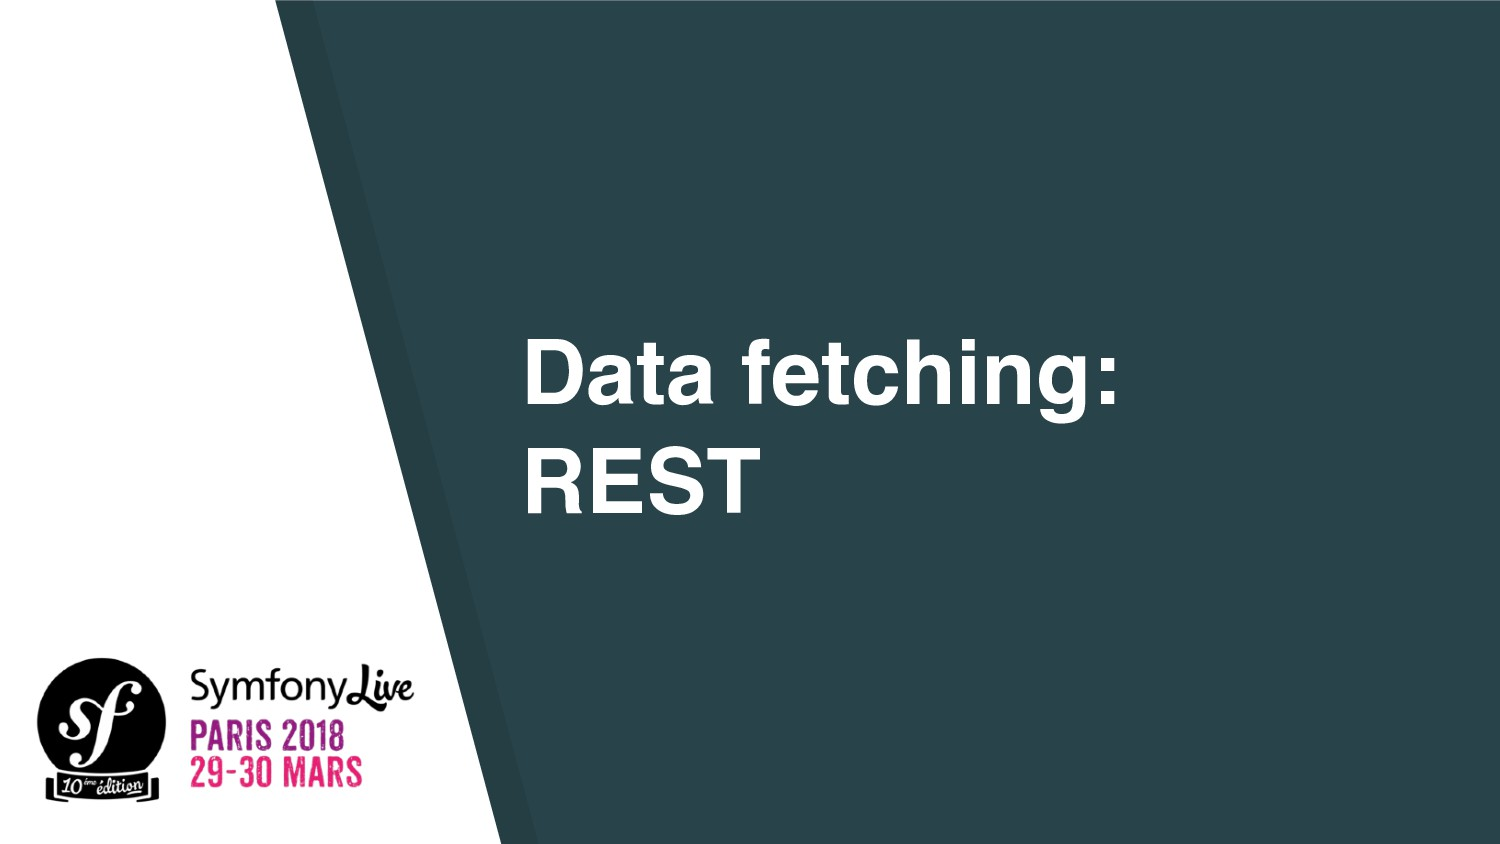 Data fetching: REST